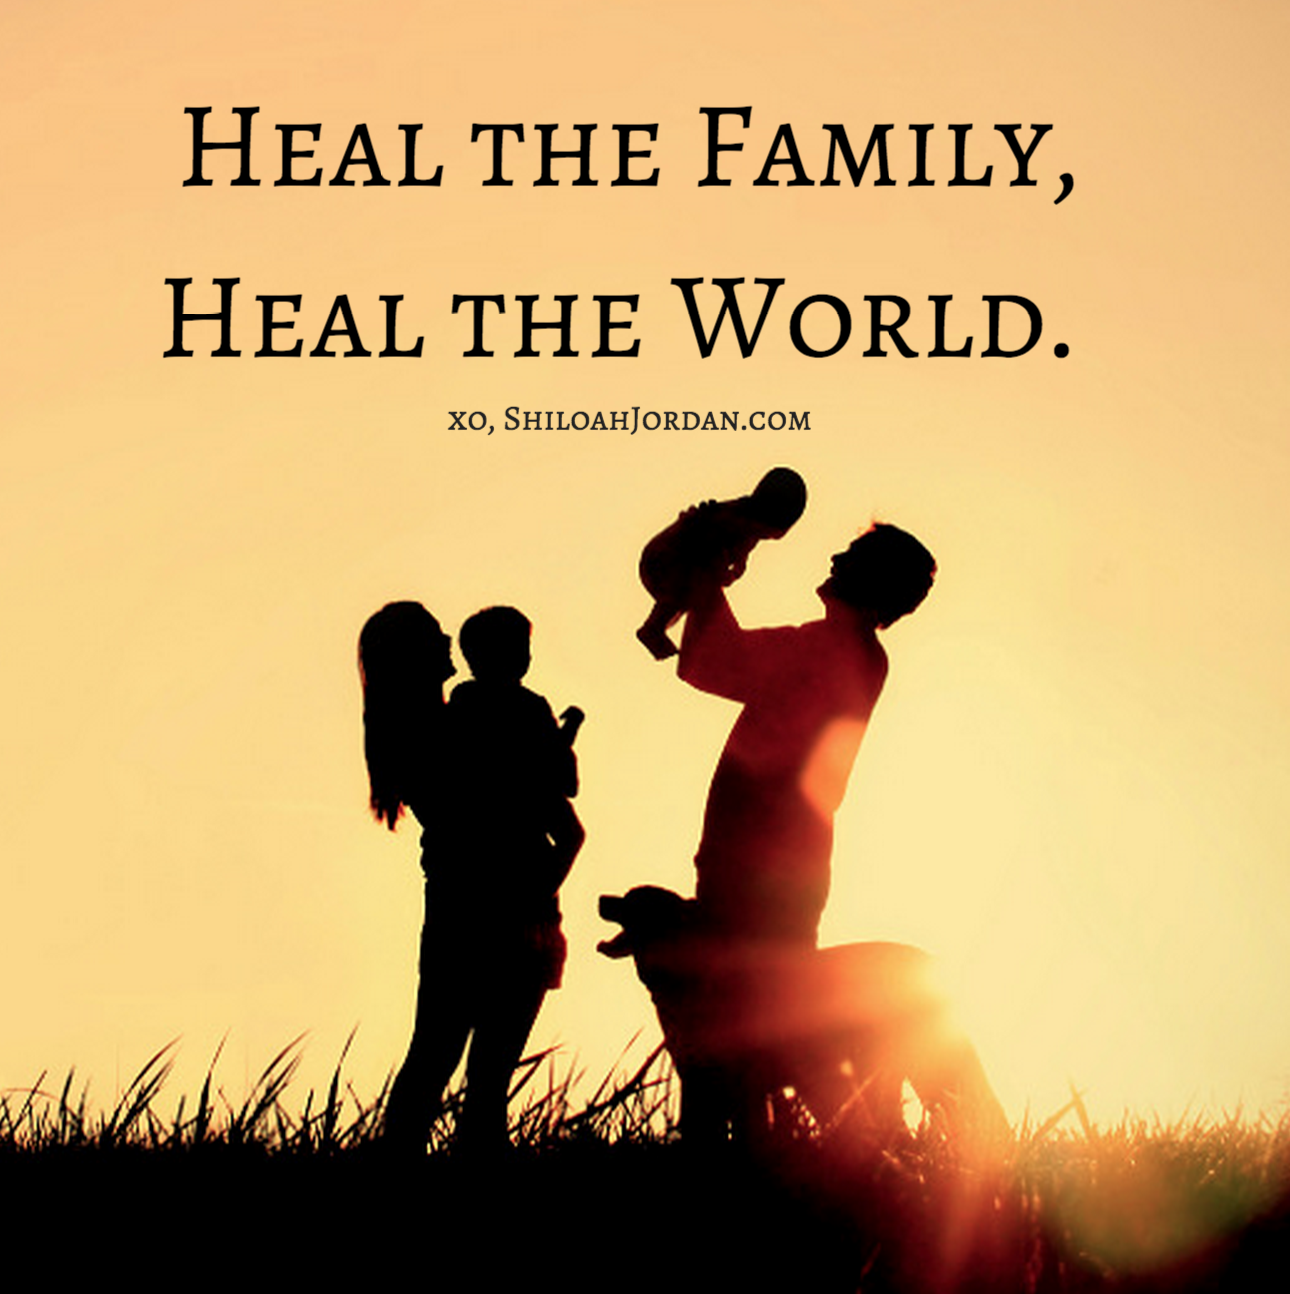 Join the movement. Heal the Family, Heal the World.   Learn more at www.MySassyGrass.com